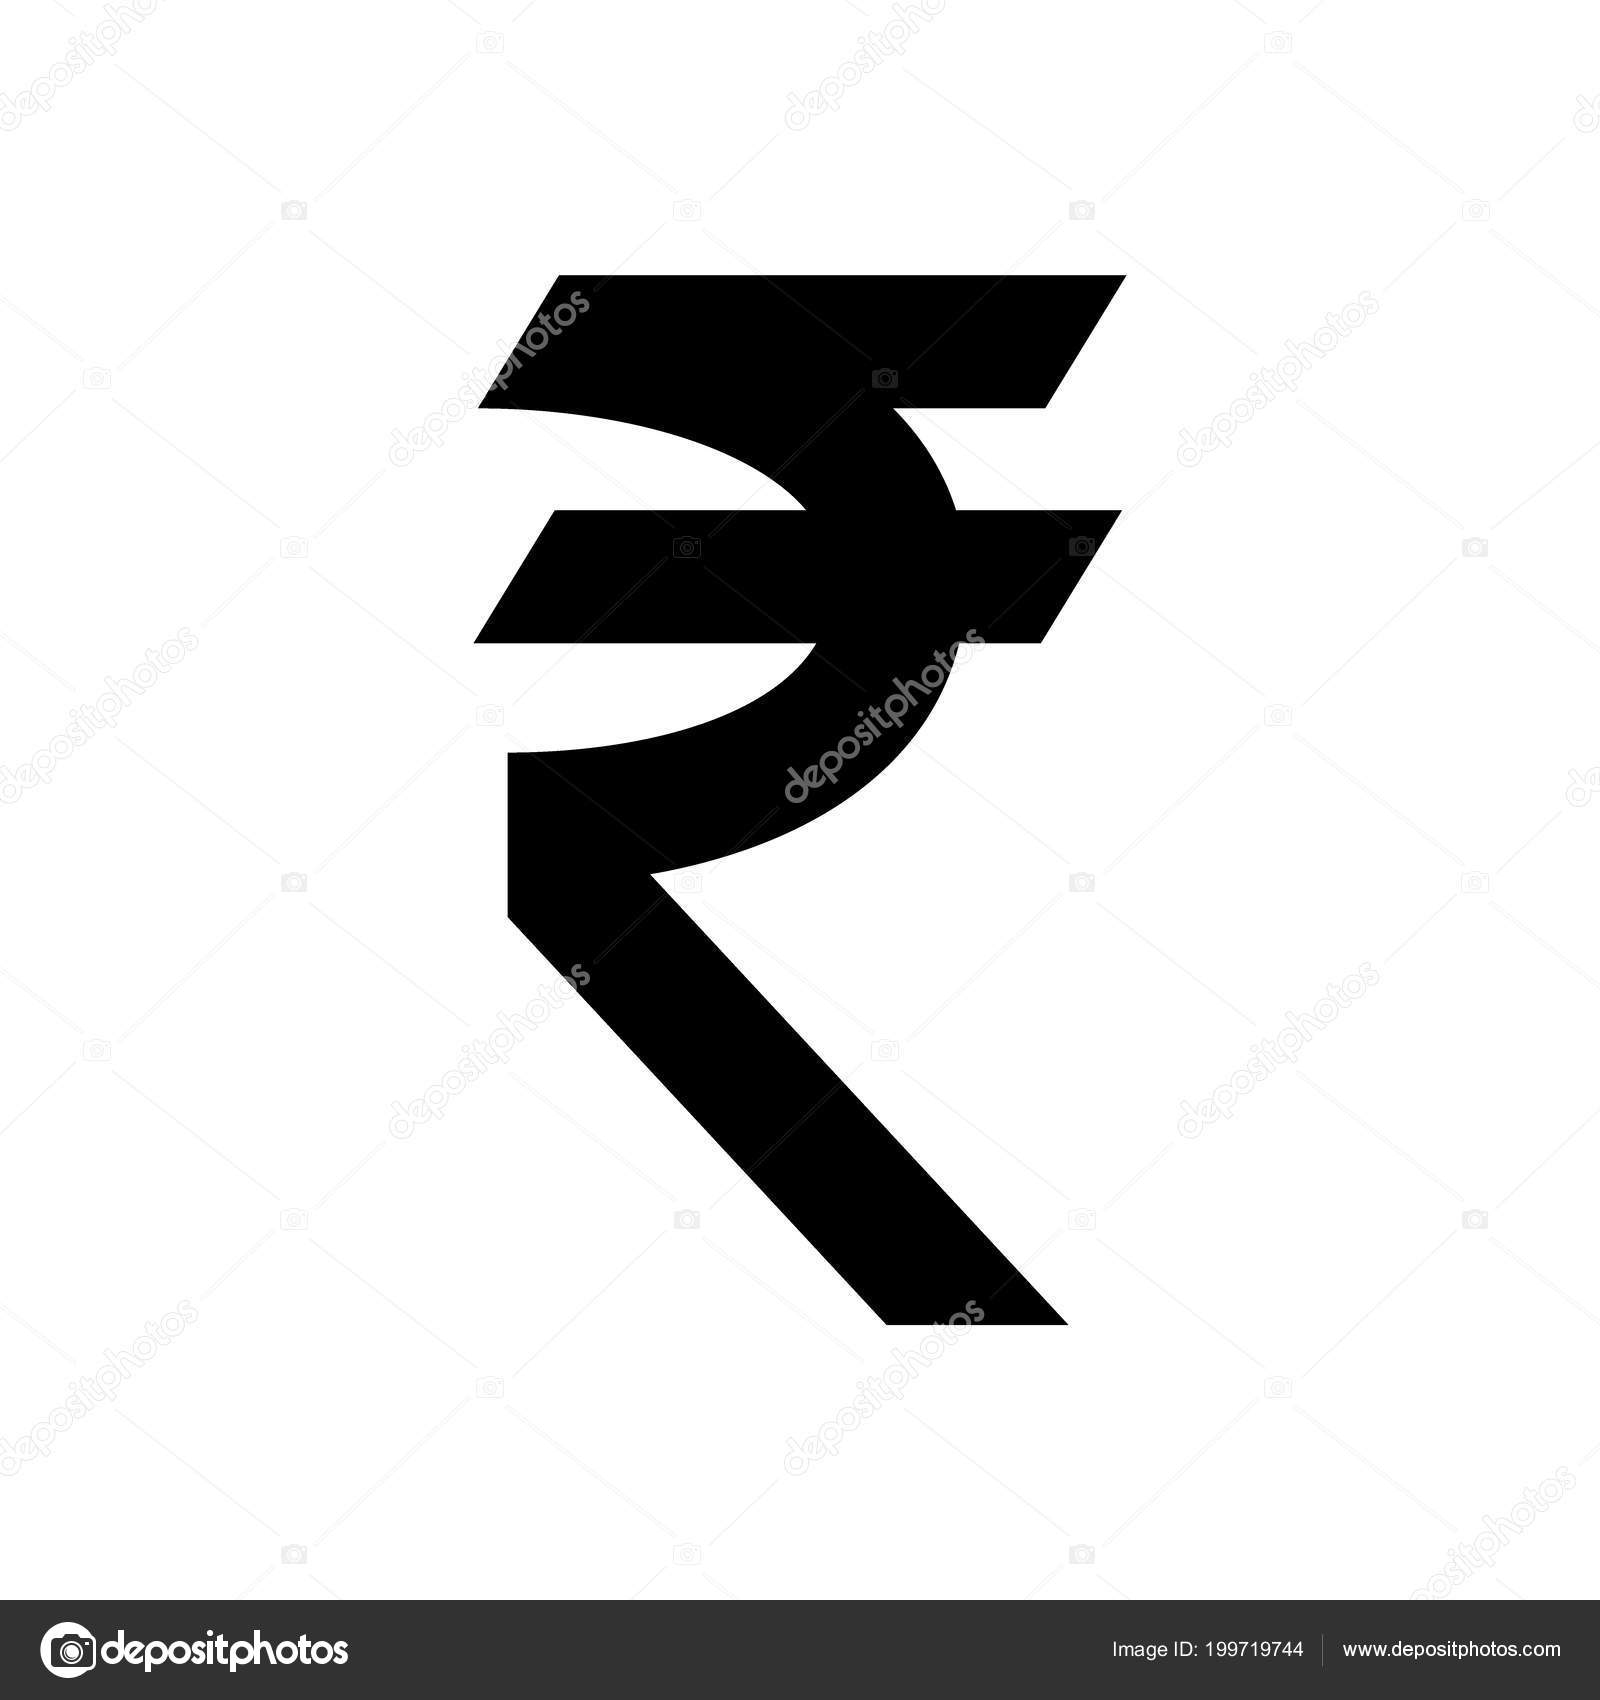 Indian Rupee Currency Symbol Black Silhouette India Rupee Sign